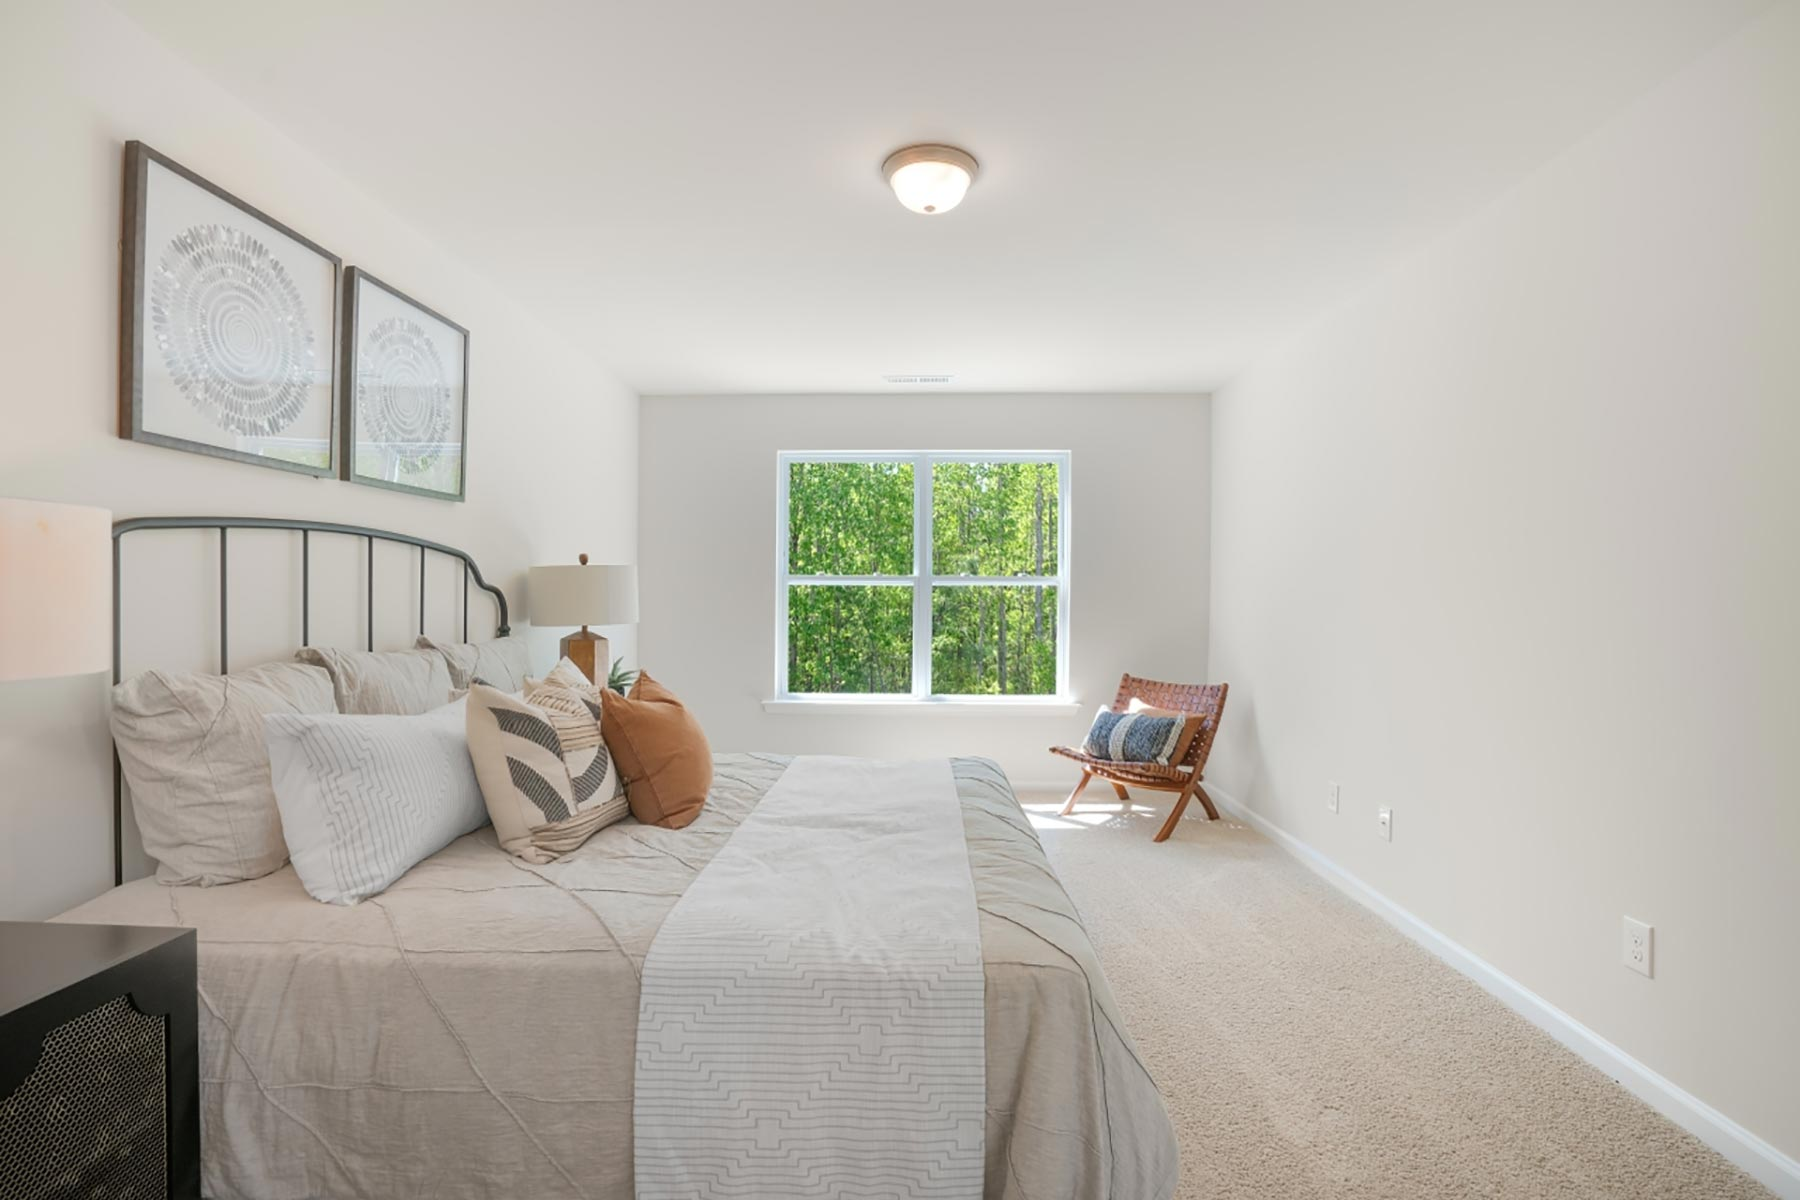 Royce Plan Bedroom at Bengal Townes in Fuquay-Varina North Carolina by Mattamy Homes